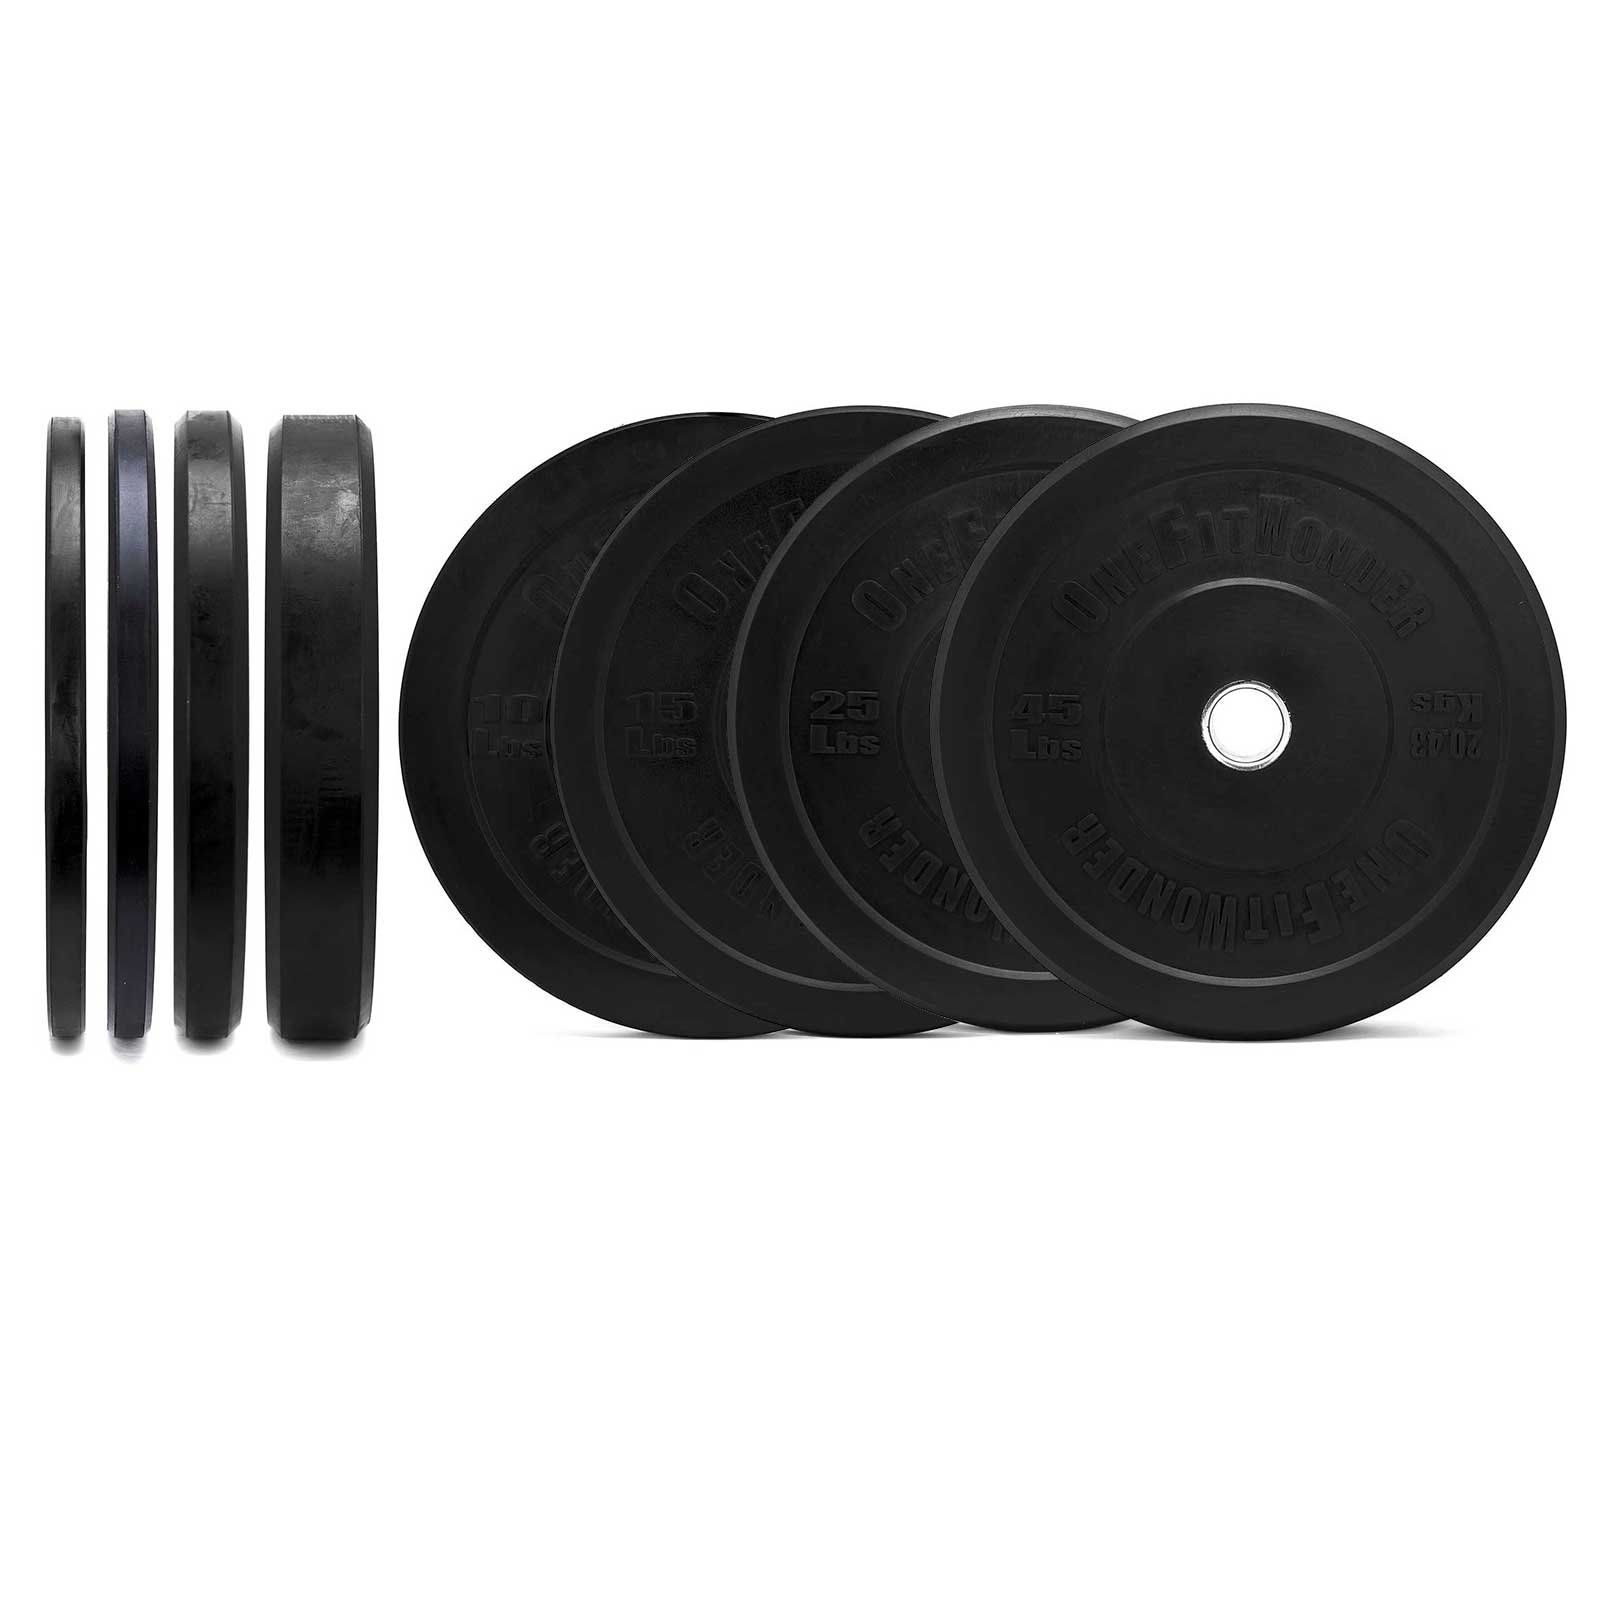 190 Lbs Black Bumper Rubber Plates Set (Pair of 10 / 15 / 25 / 45 Lbs) - Weight Plates for Strength Training Olympic Weight Lifting Powerlifting.  sc 1 st  Pinterest & 190 Lbs Black Bumper Rubber Plates Set (Pair of 10 / 15 / 25 / 45 ...